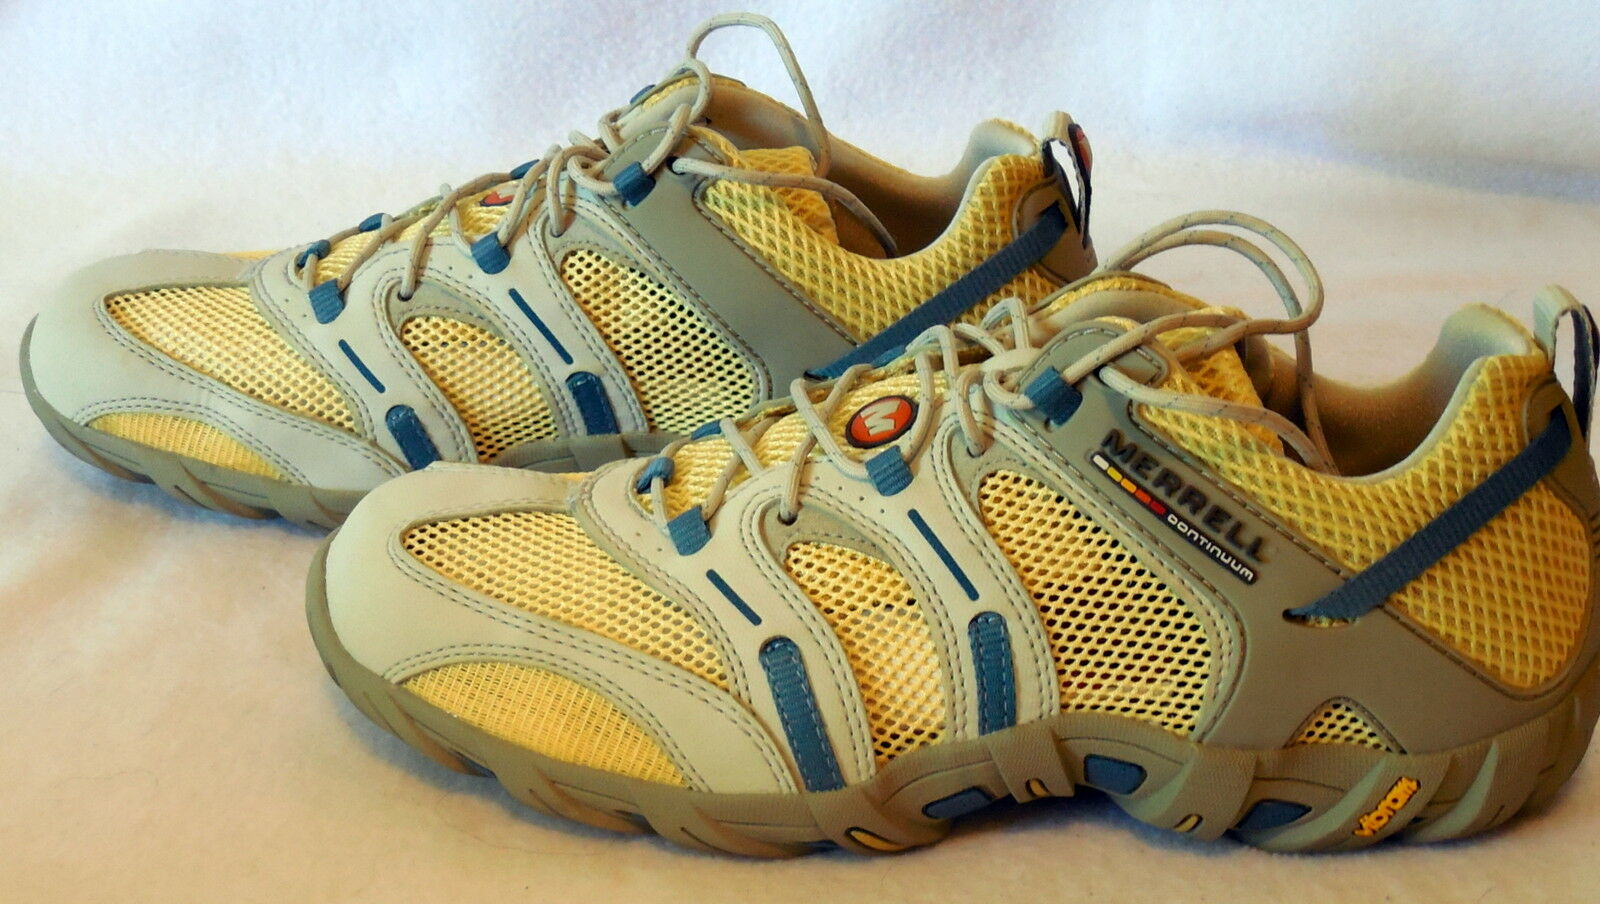 MERRELL Continuum Femme MULTI-SPORT ATHLETIC Chaussures Taille 9.5 L98